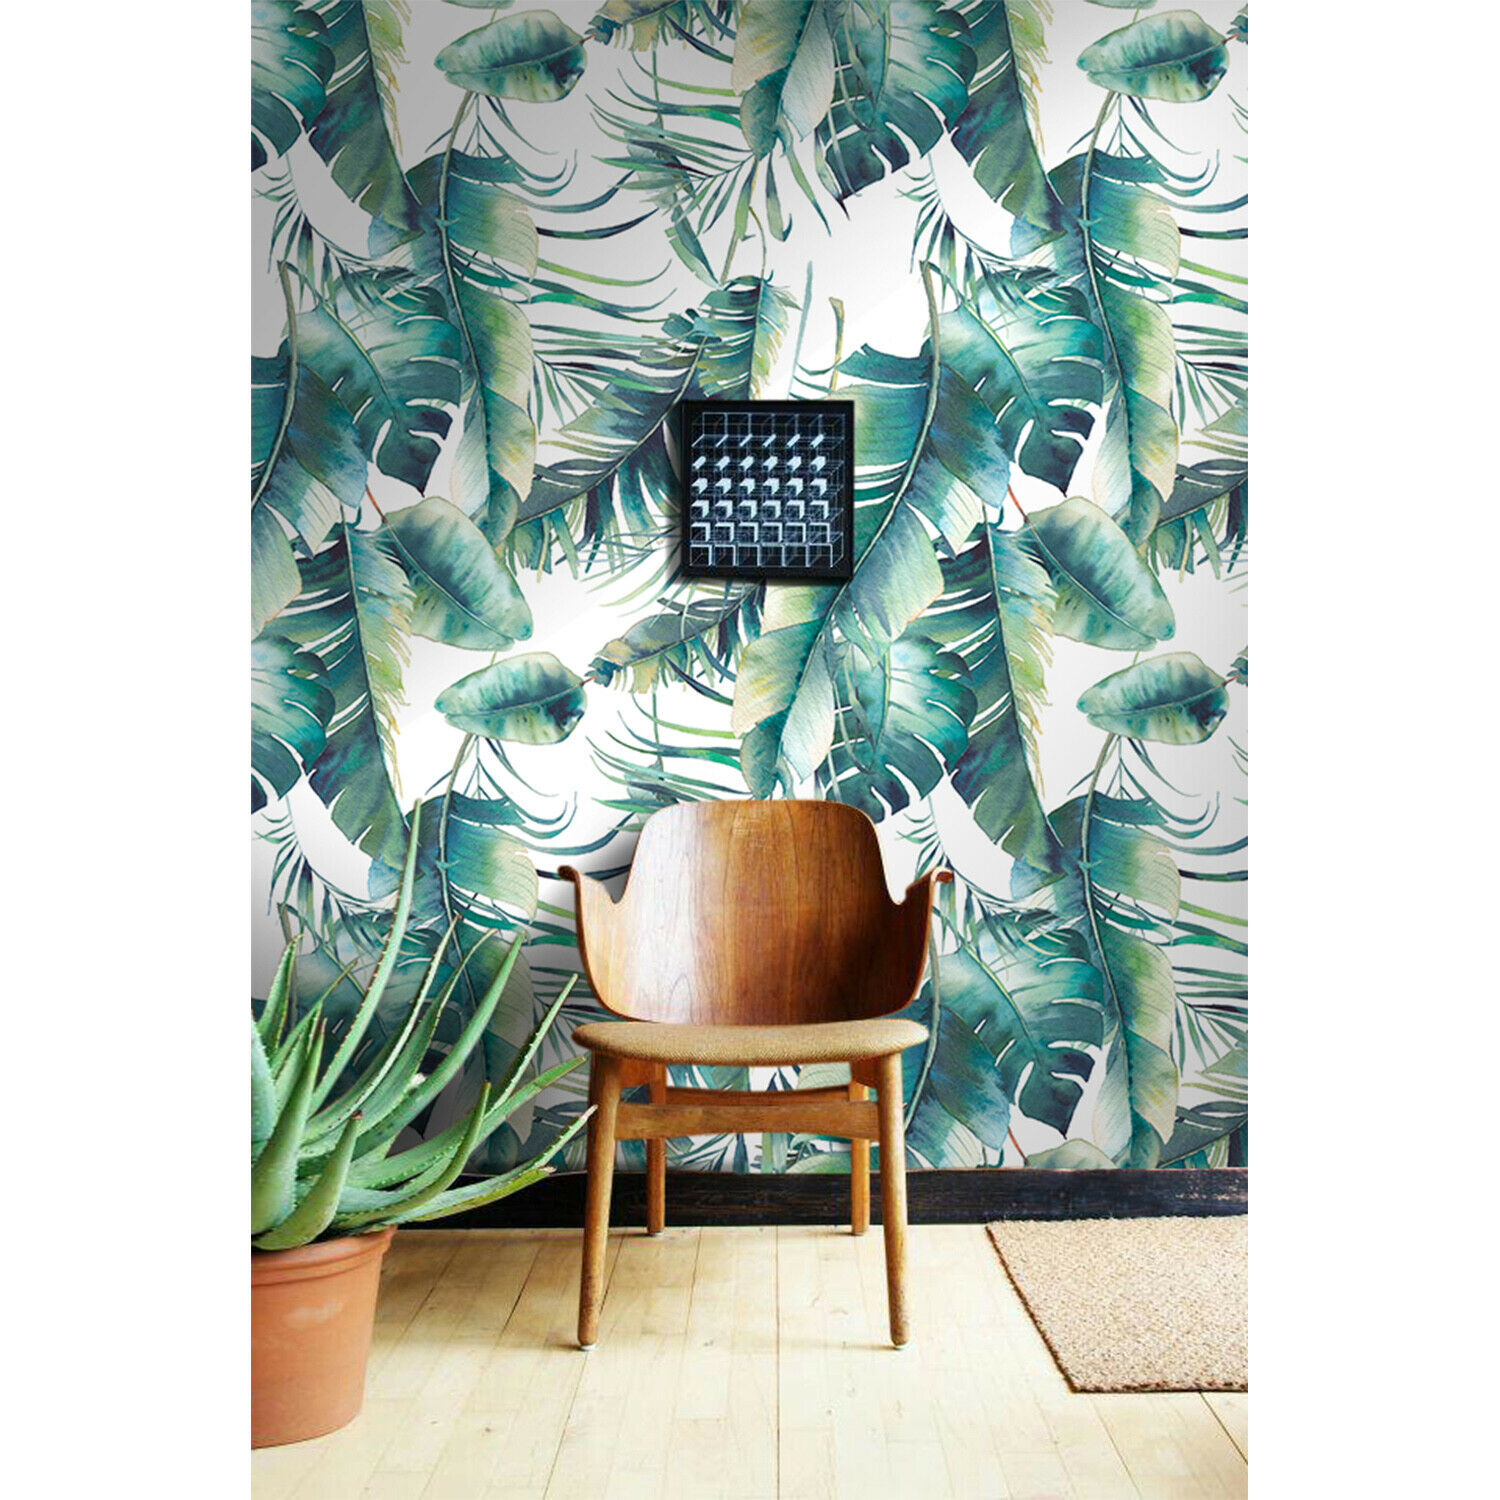 Leaves Explosion self adhesive WaterFarbe wall mural Leaf removable wallpaper